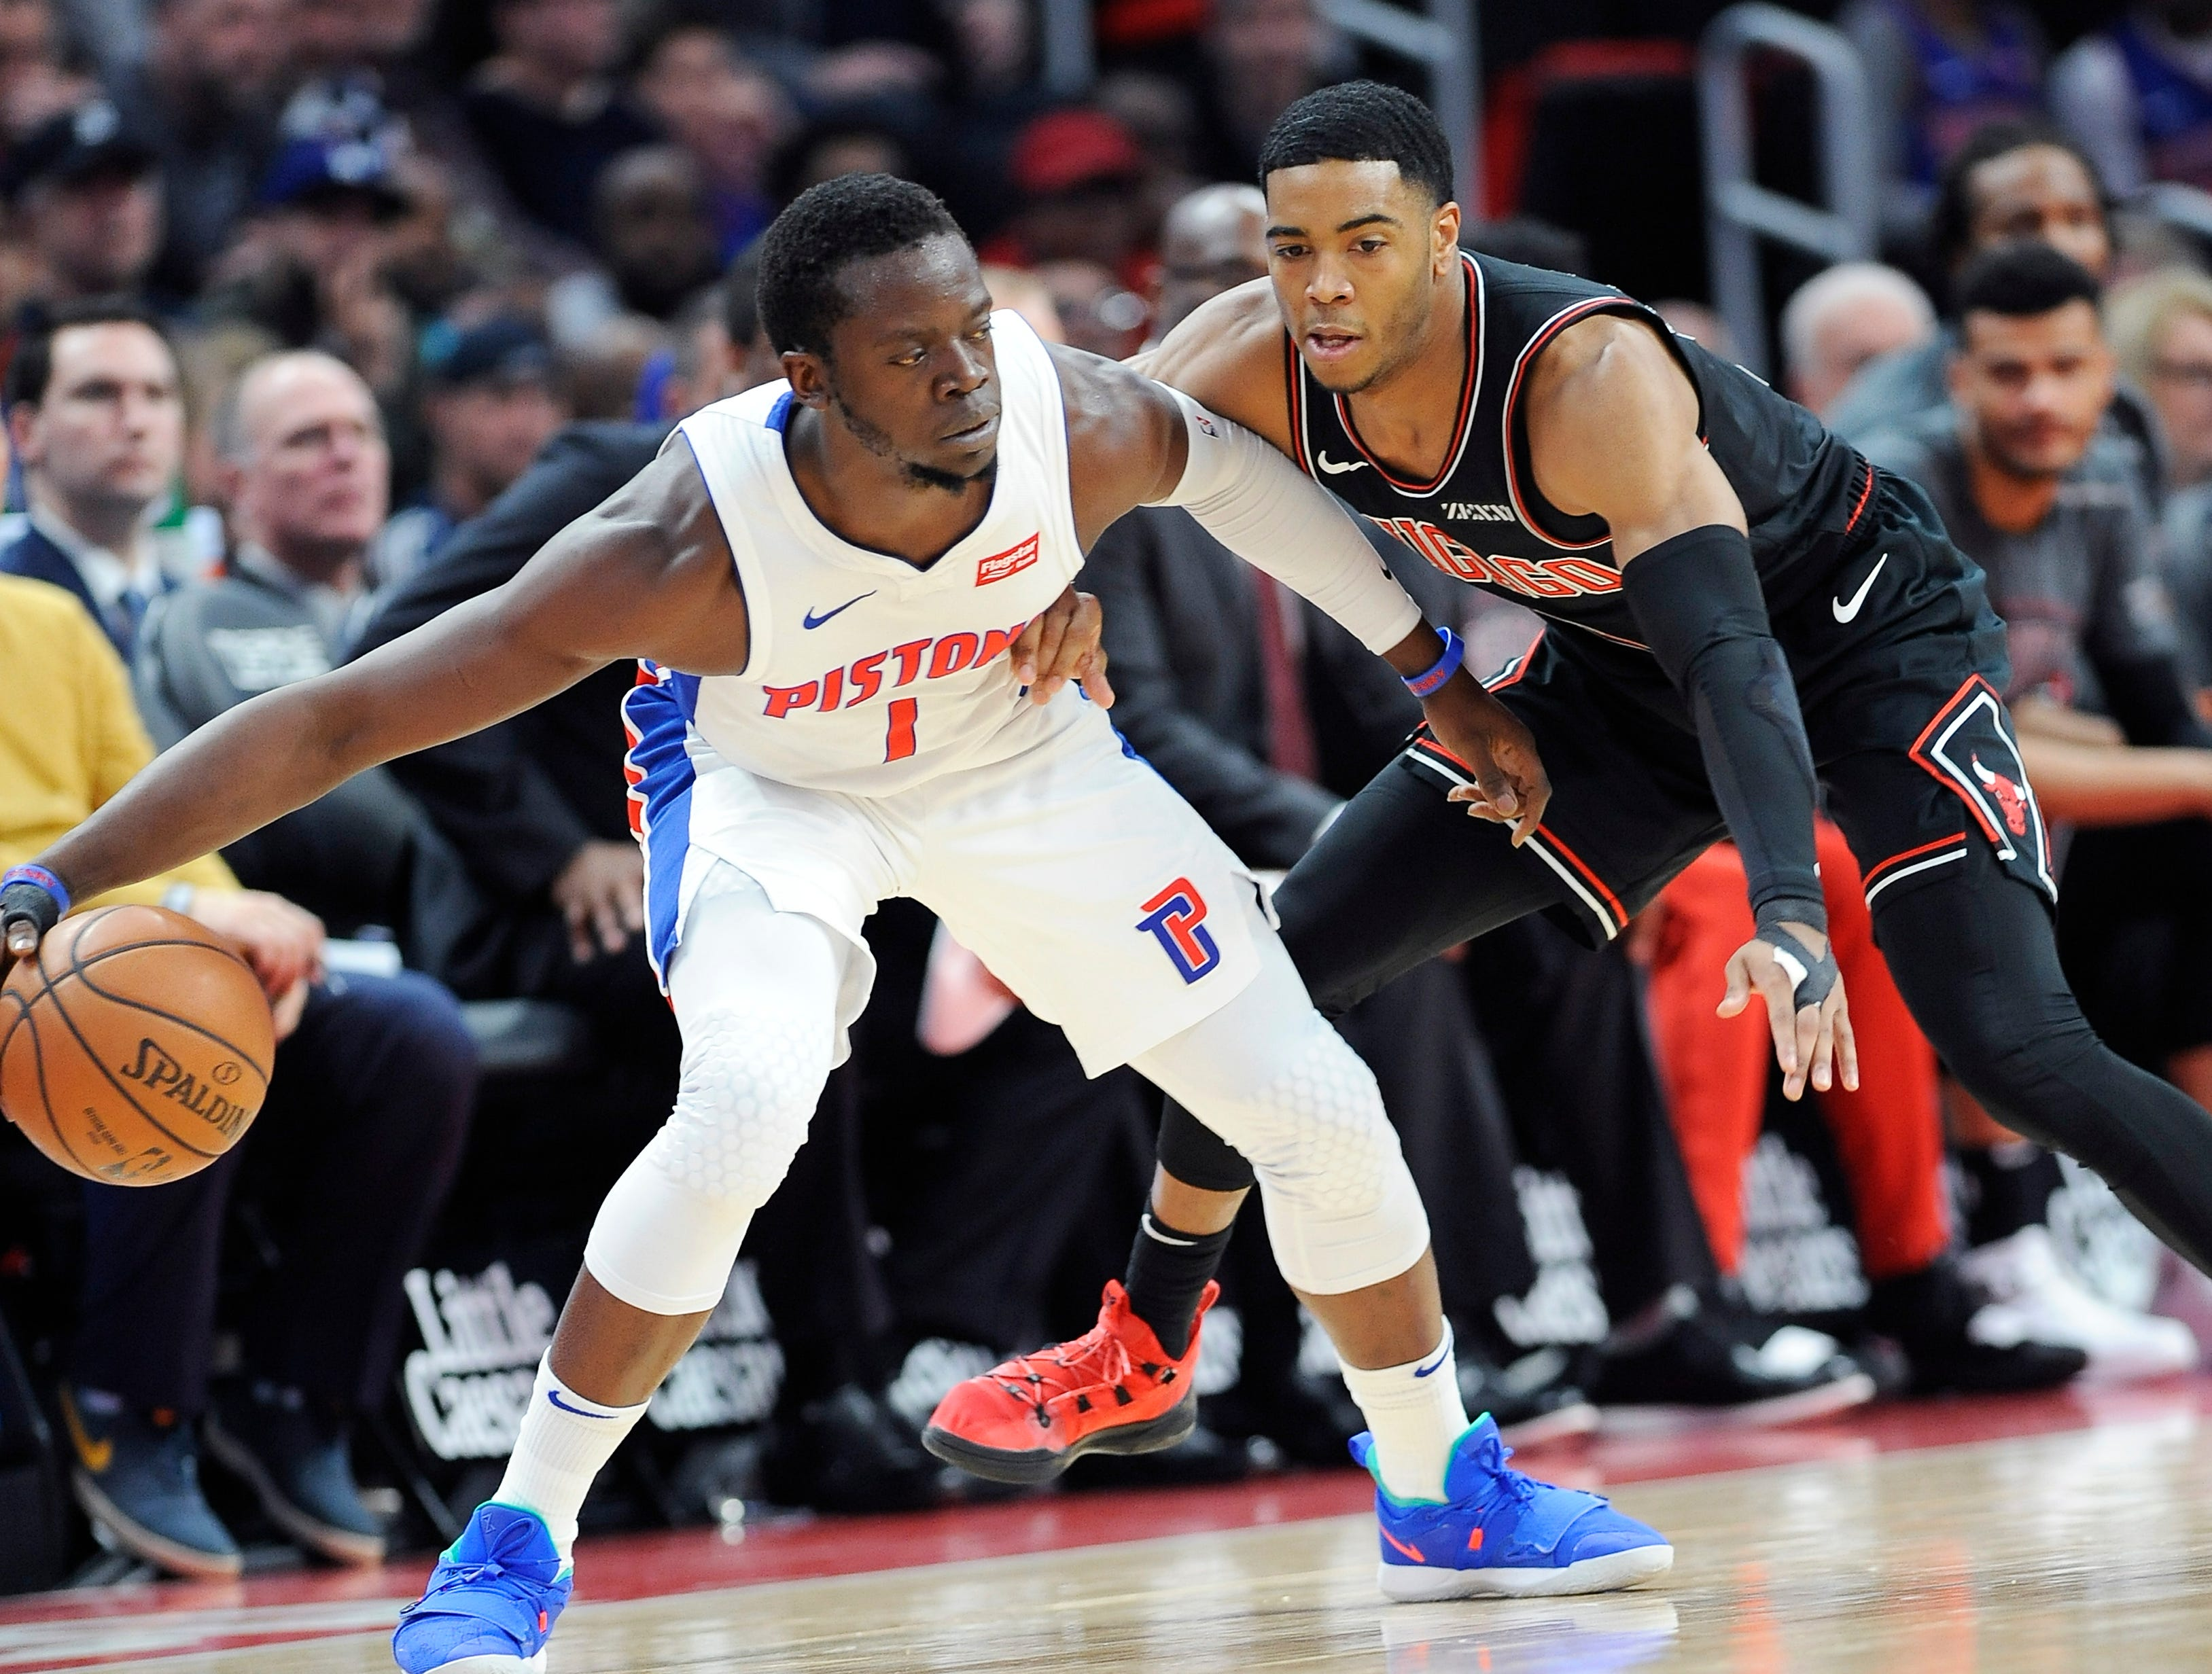 Pistons' Reggie Jackson looks for room around Bulls' Shaquille Harrison in the first quarter. Jackson had 21 points and 6 assists.